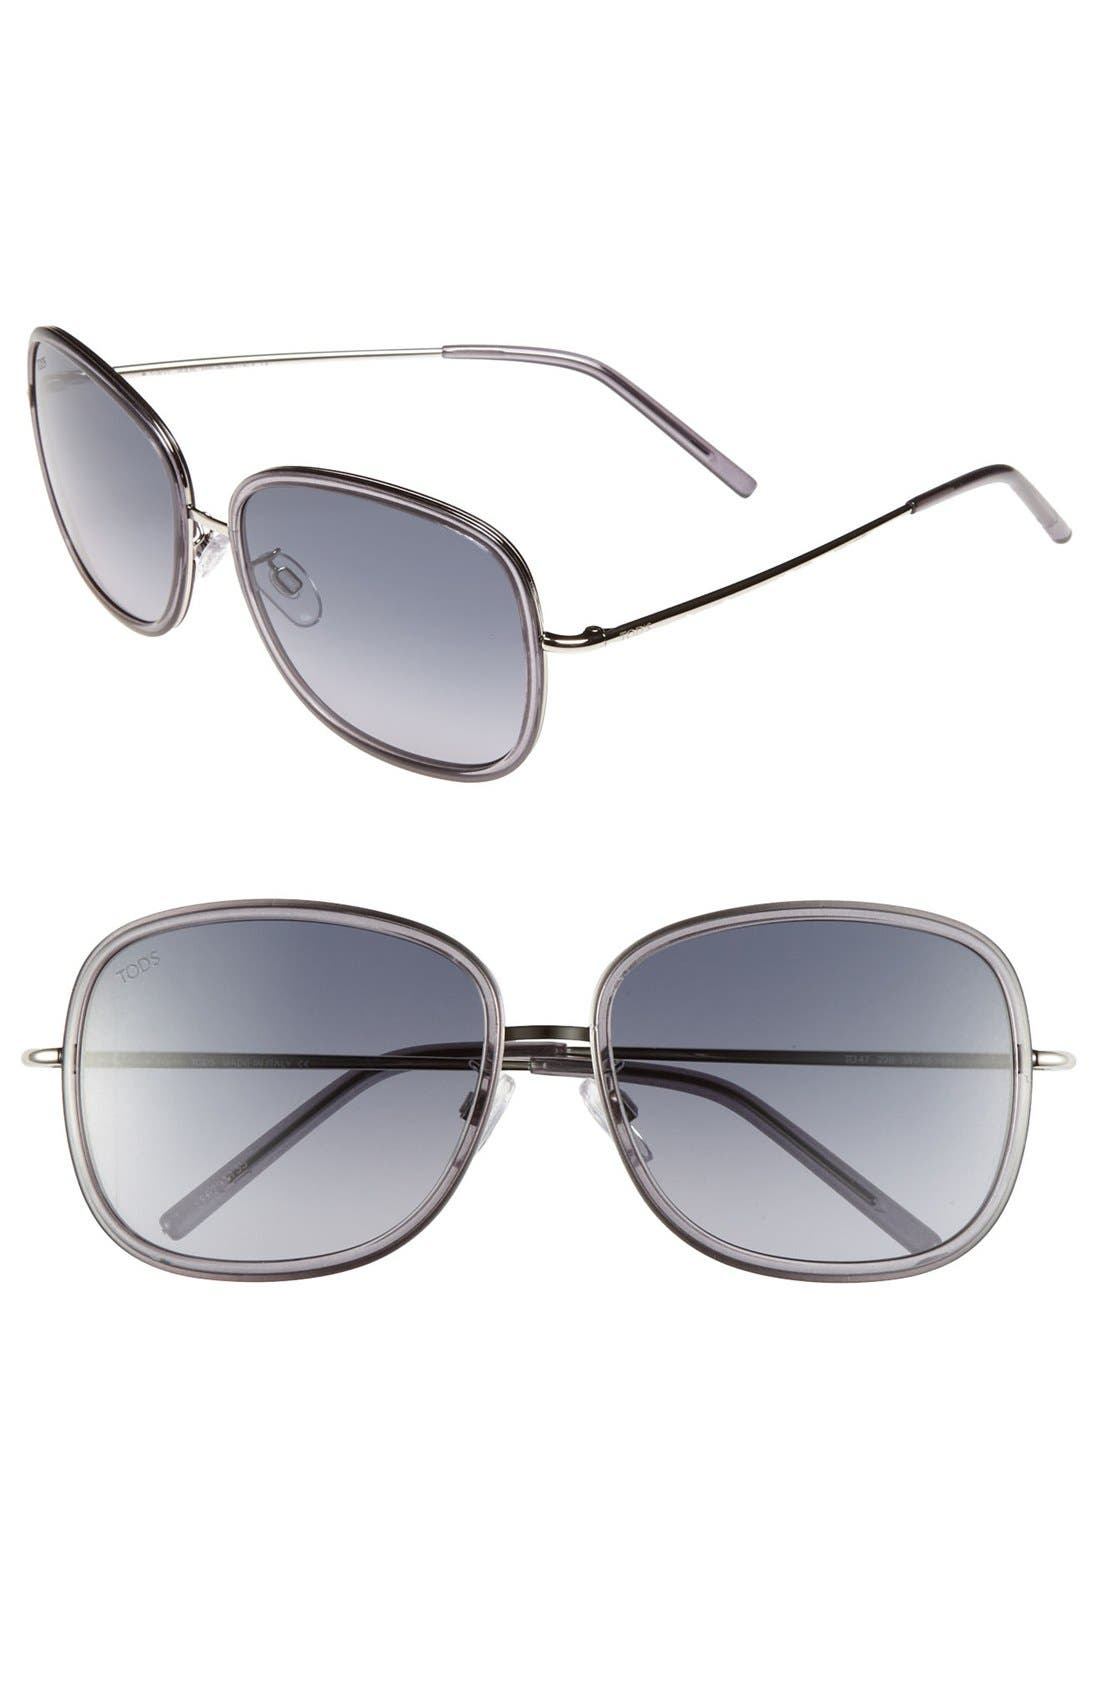 Main Image - Tod's 'Sung' 58mm Metal Aviator Sunglasses